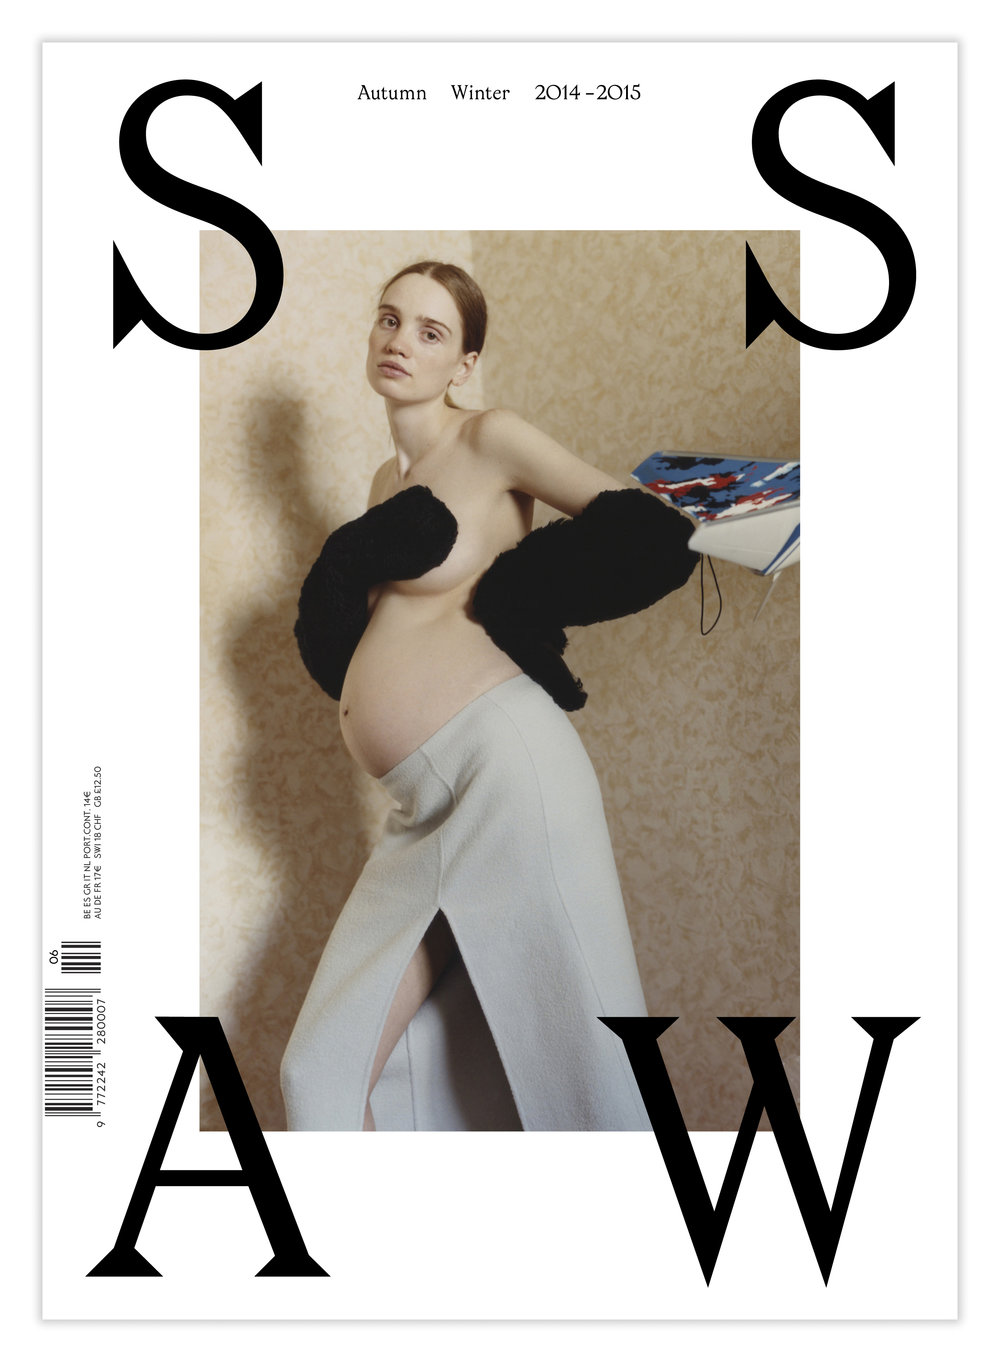 SSAW Autumn Winter 2014-2015. Photography by Harley Weir, styling Lotta Volkova. Courtesy of SSAW.